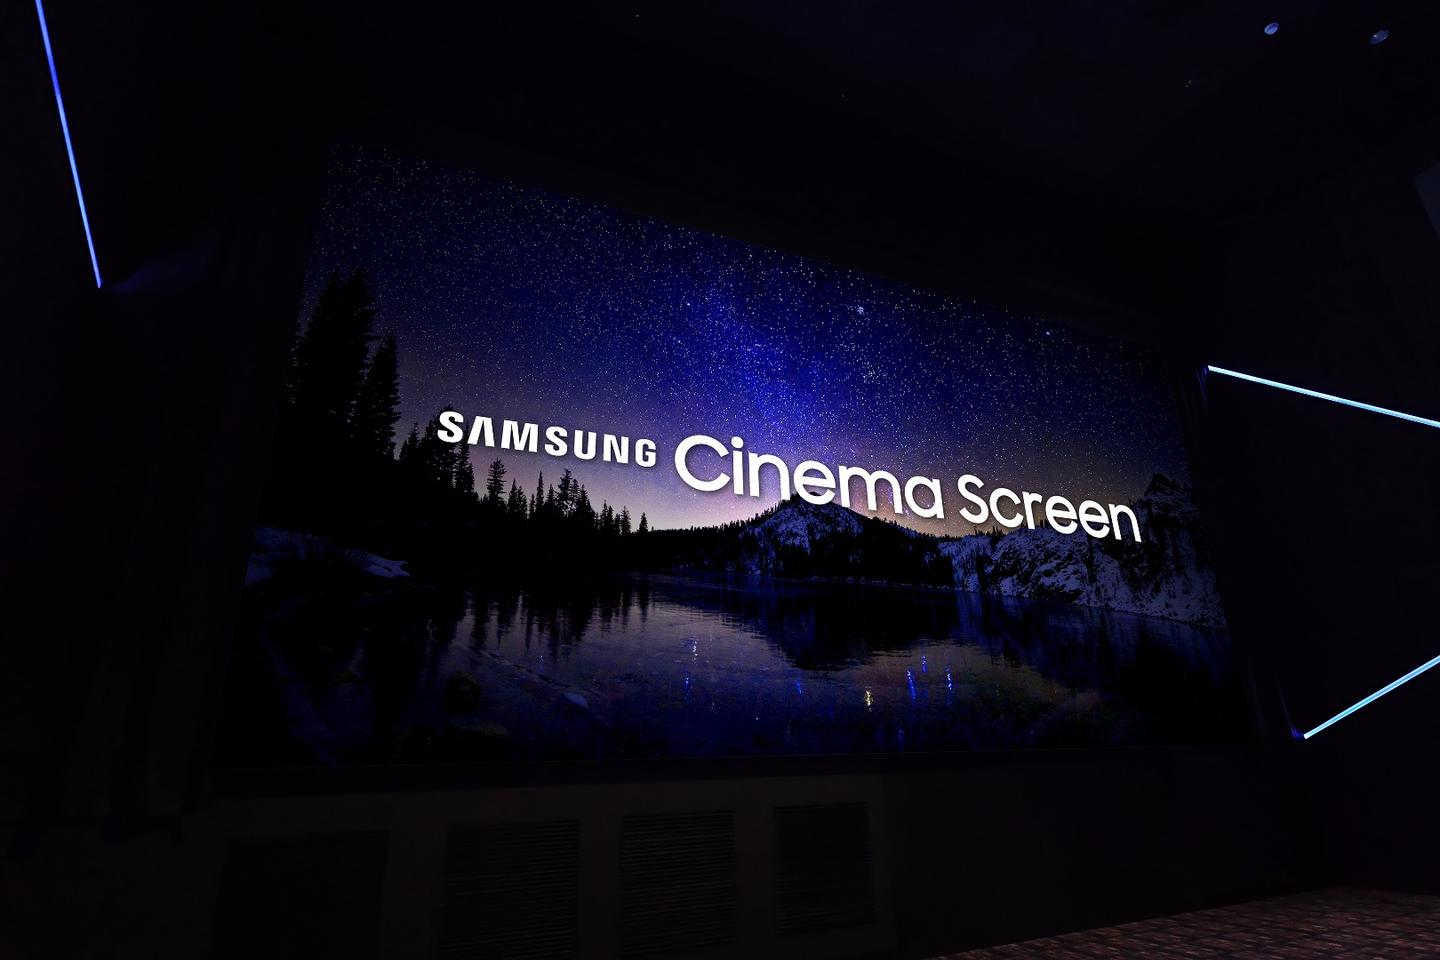 Samsung's Cinema LED Screen boasts 4,096 x 2,160 UHD resolution, coupled with High Dynamic Range technology